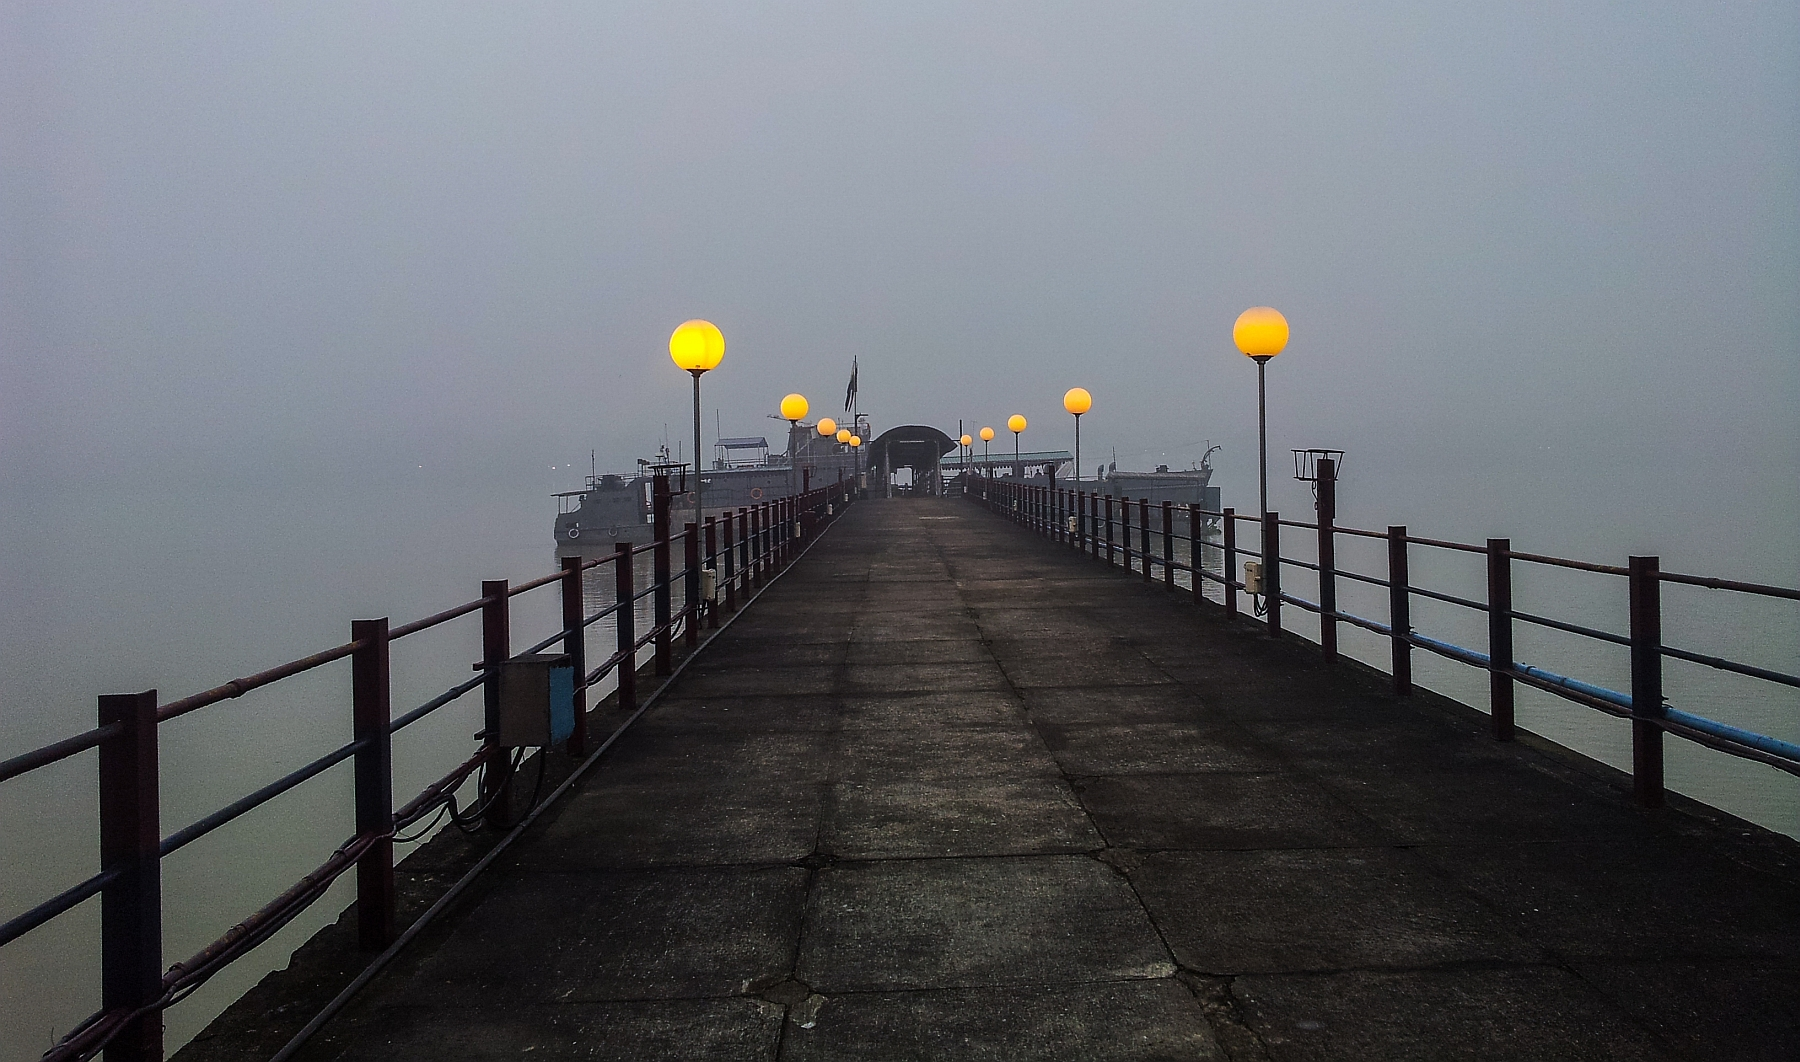 the jetty lights cast a warm ambiance to a dull scene on a early winter morning ...